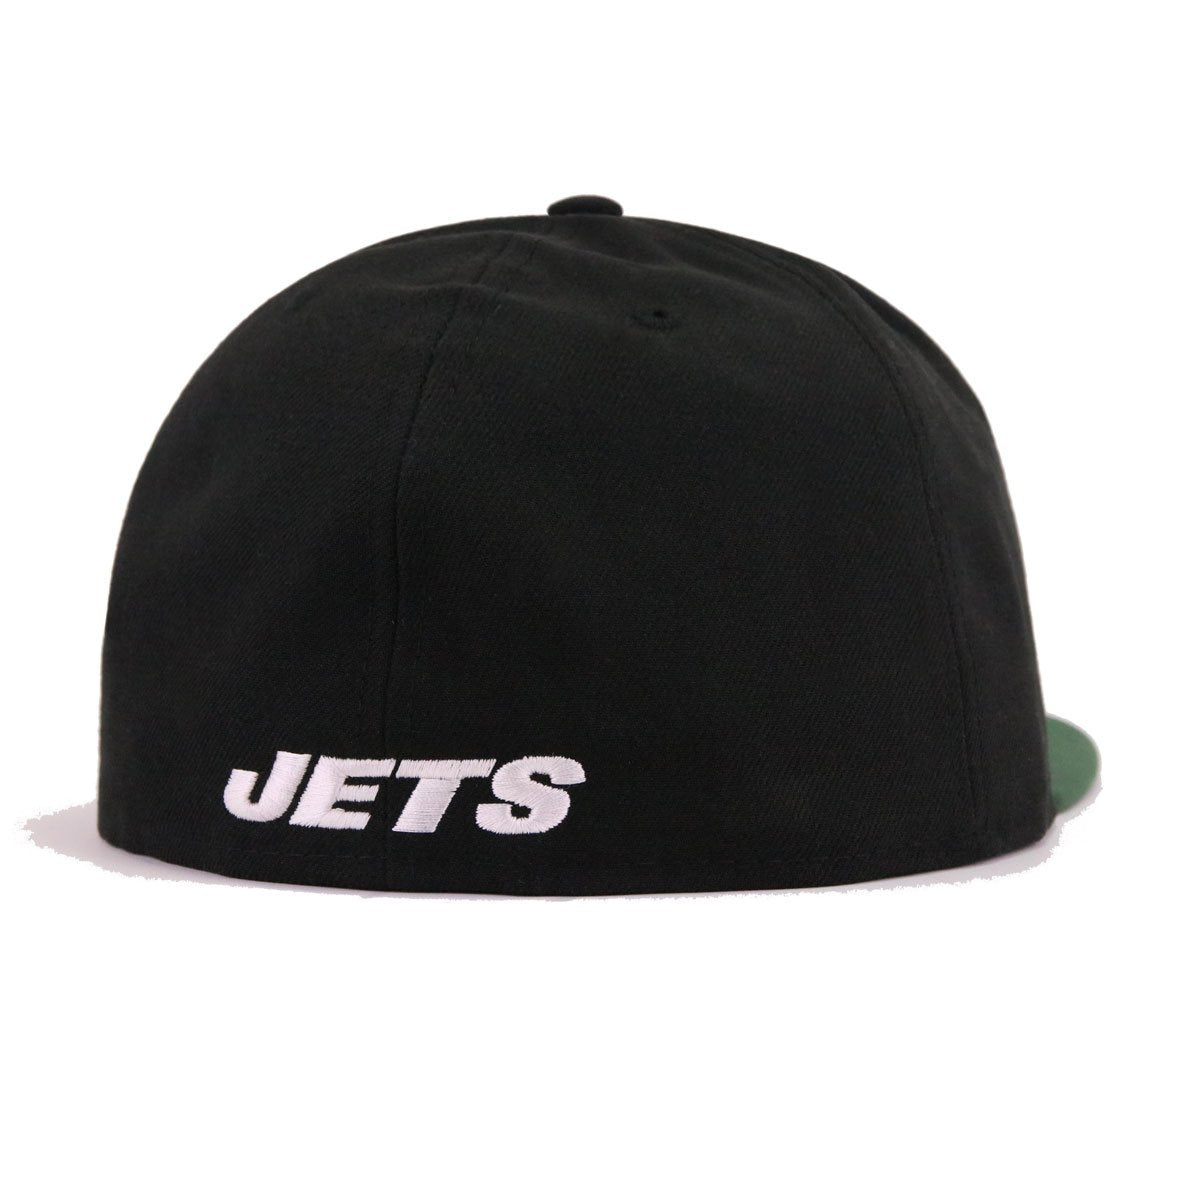 New York Jets Black Cilantro Green New Era 59Fifty Fitted